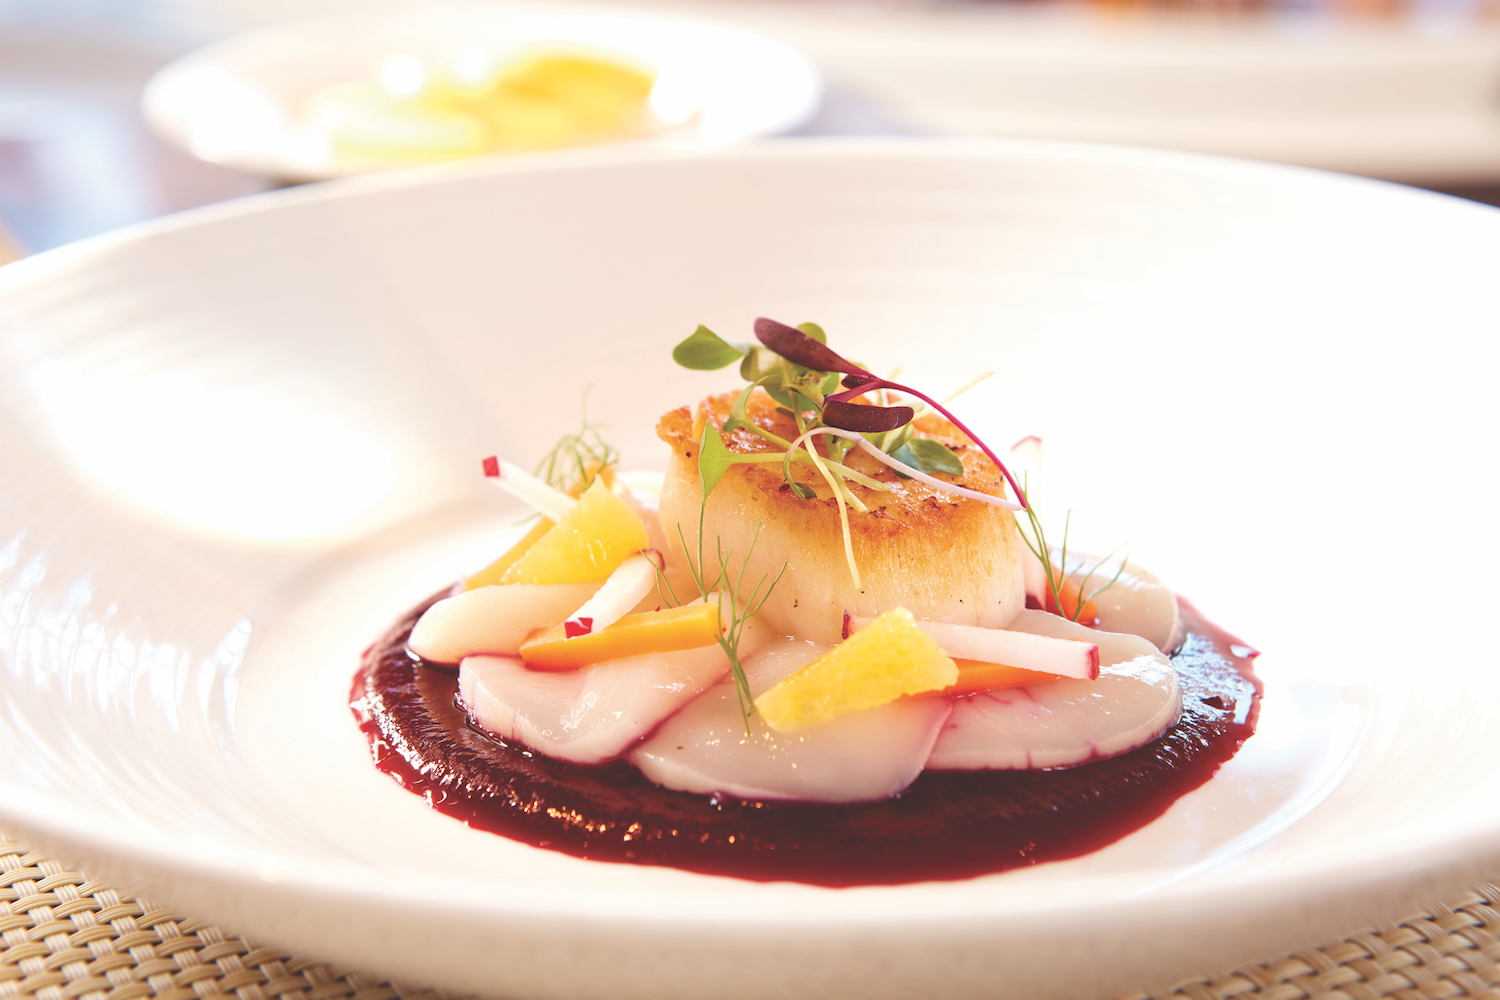 Pear roasted scallops are a must-try at View